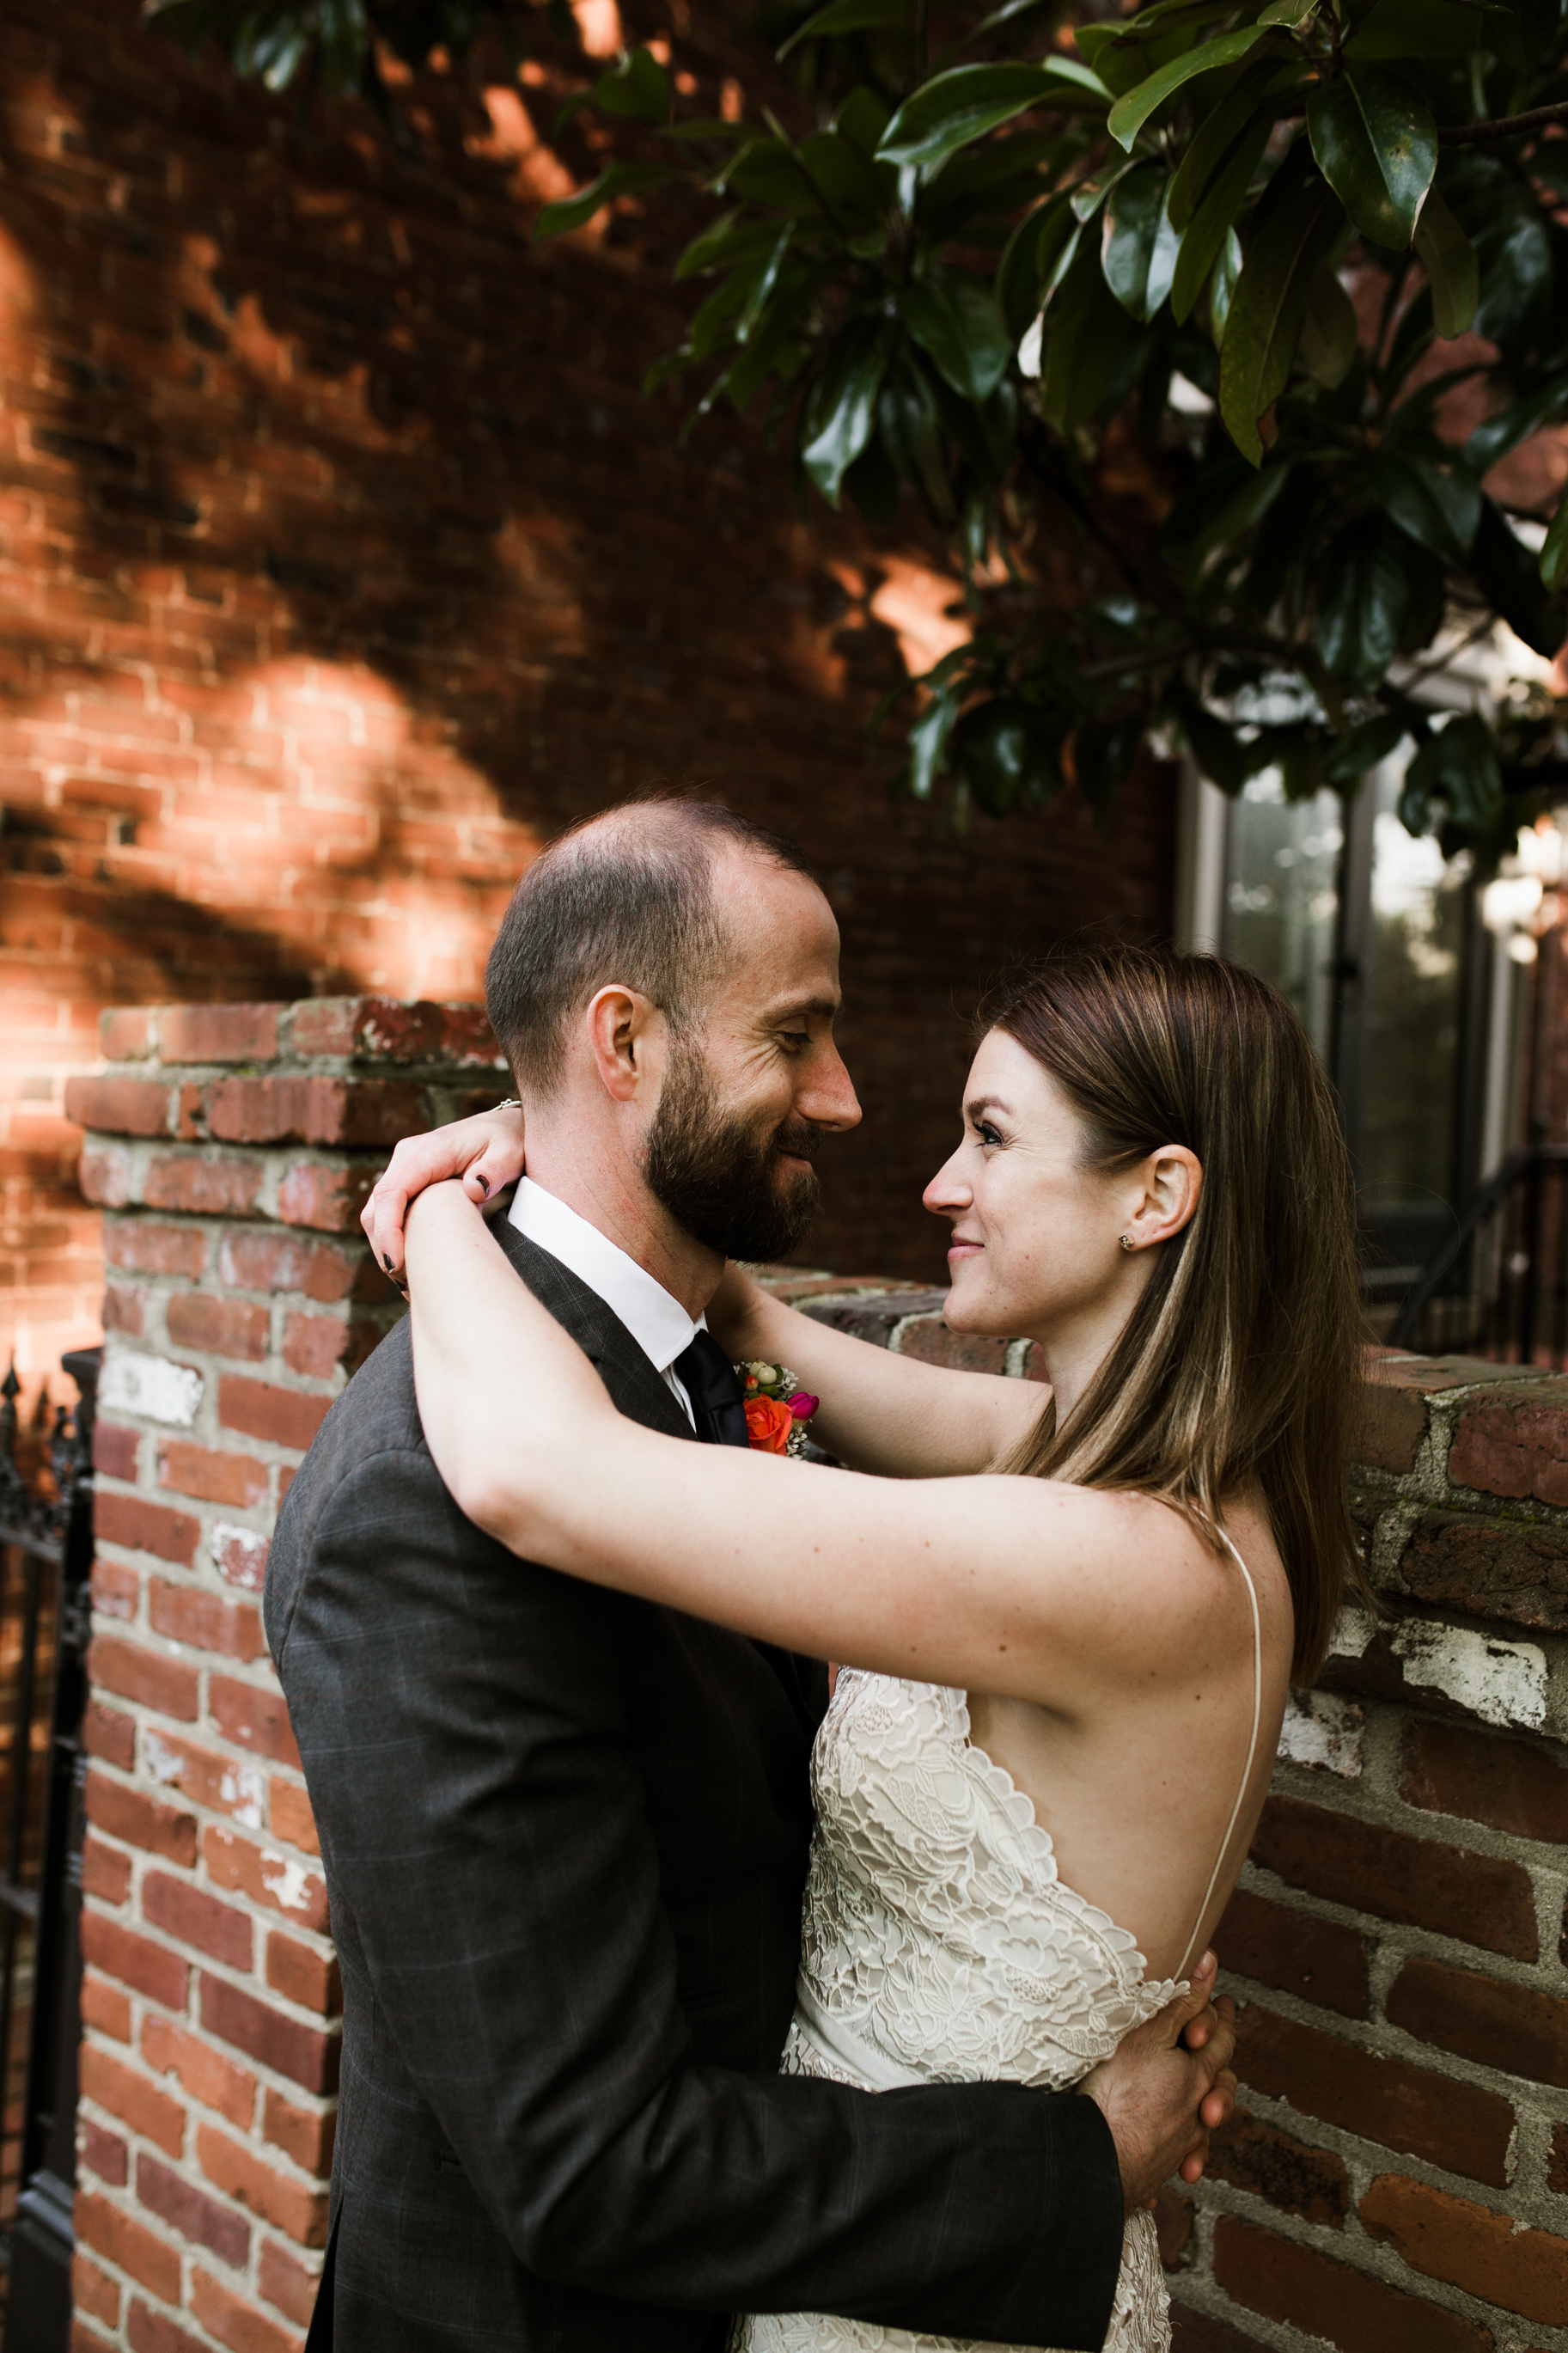 Louisville Courthouse Wedding Louisville Wedding Photographer 2018 Crystal Ludwick Photo Louisville Wedding Photographer Kentucky Wedding Photographer (68 of 76).jpg